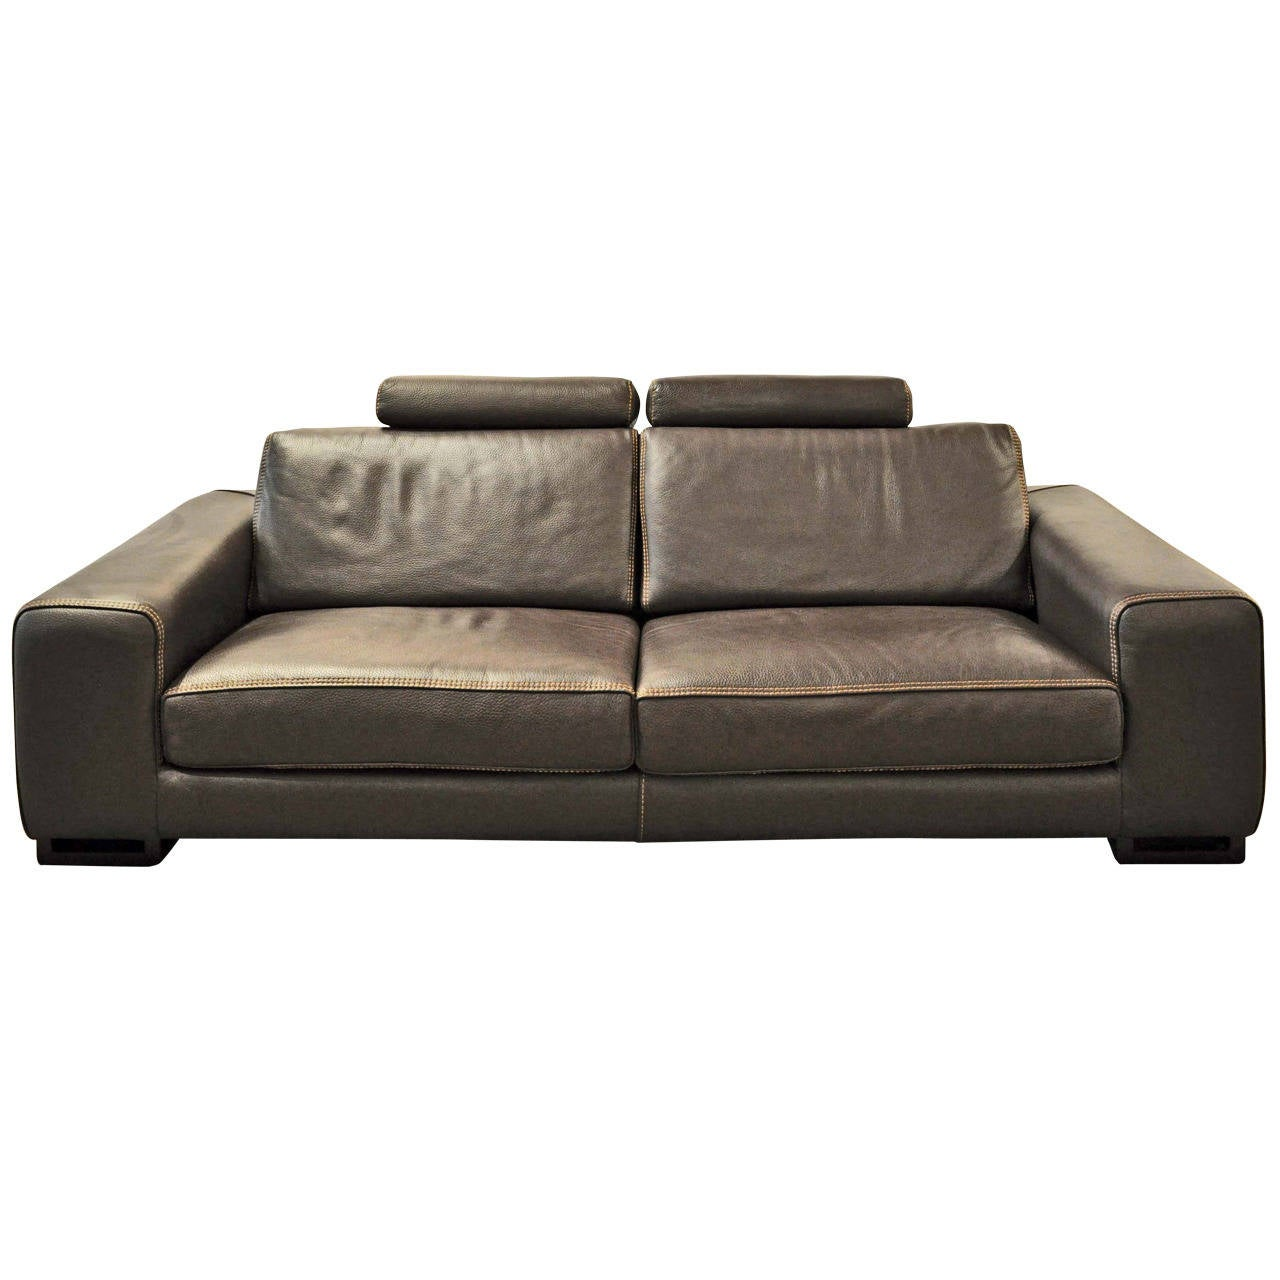 Roche bobois chocolat upholstered leather sofa at 1stdibs for Chaise longue roche bobois